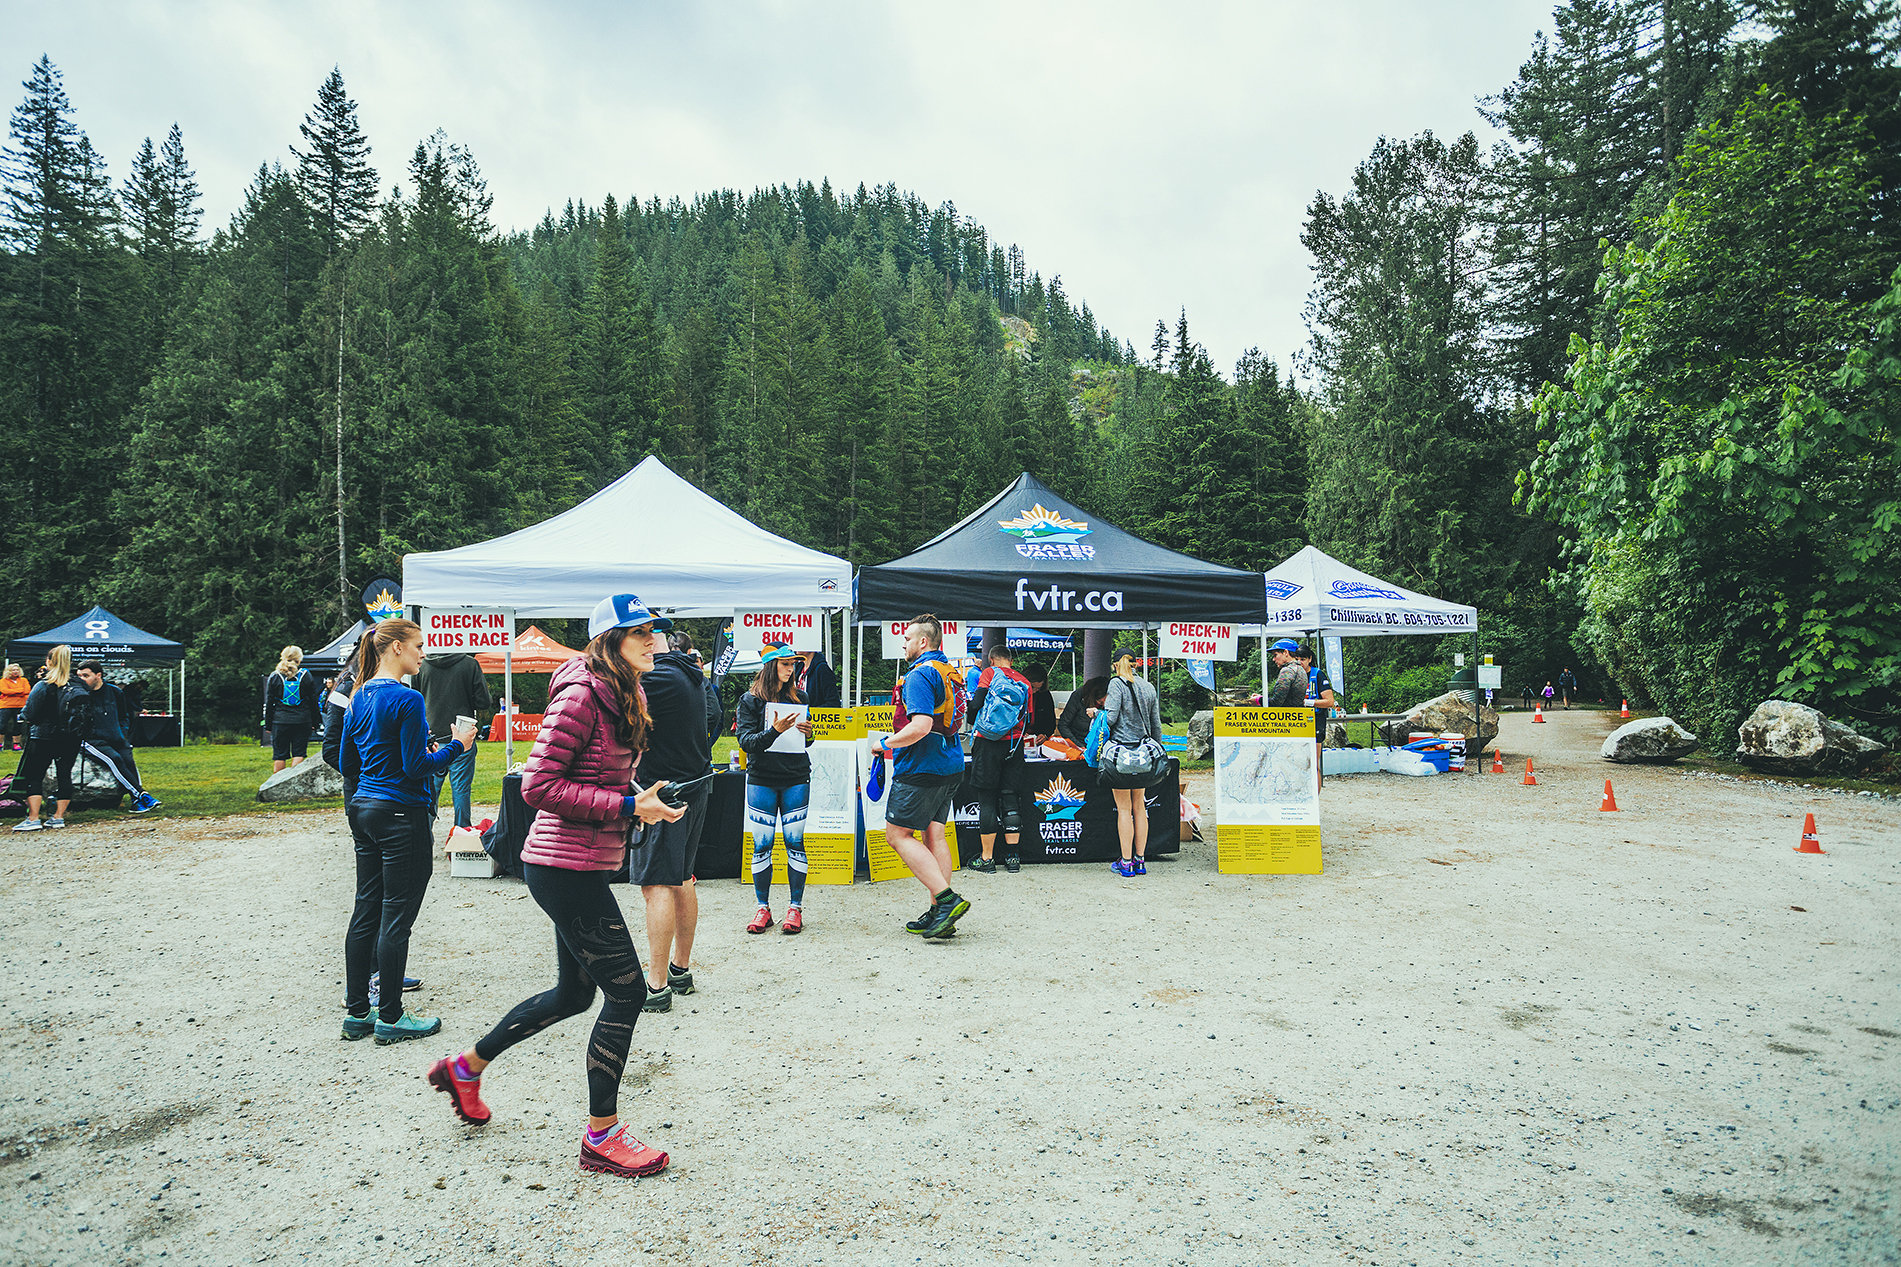 Fraser Valley Trail Races - Bear Mountain - IMG_2331 by Brice Ferre Studio - Vancouver Portrait Adventure and Athlete Photographer.jpg